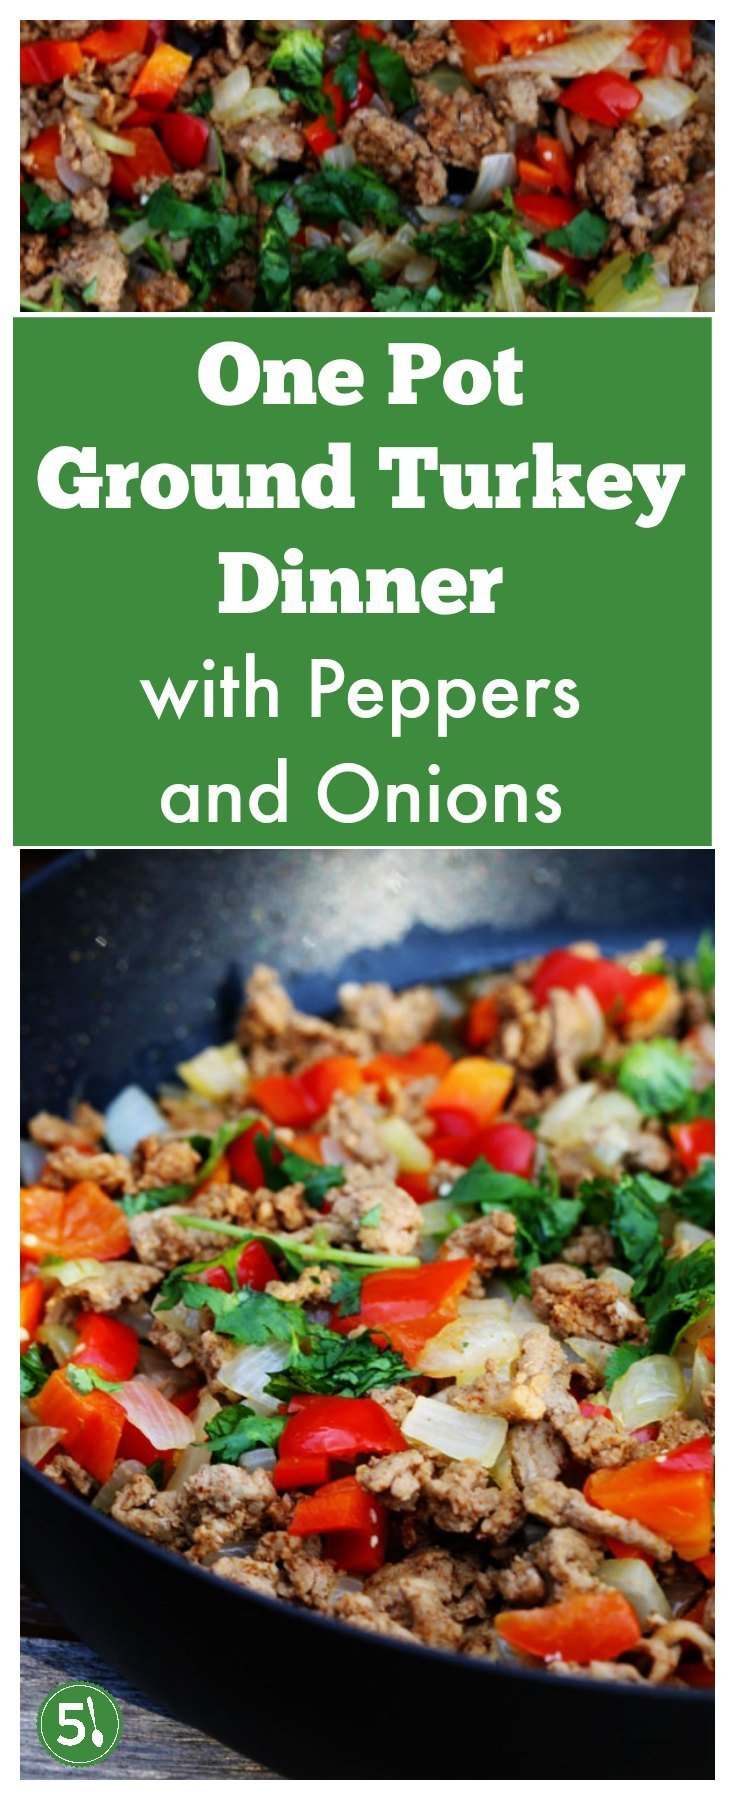 Healthy and Easy ground turkey dinner with peppers and onions is quick to throw together, a one pot meal, and loved by families for a warm comfort food dinner.